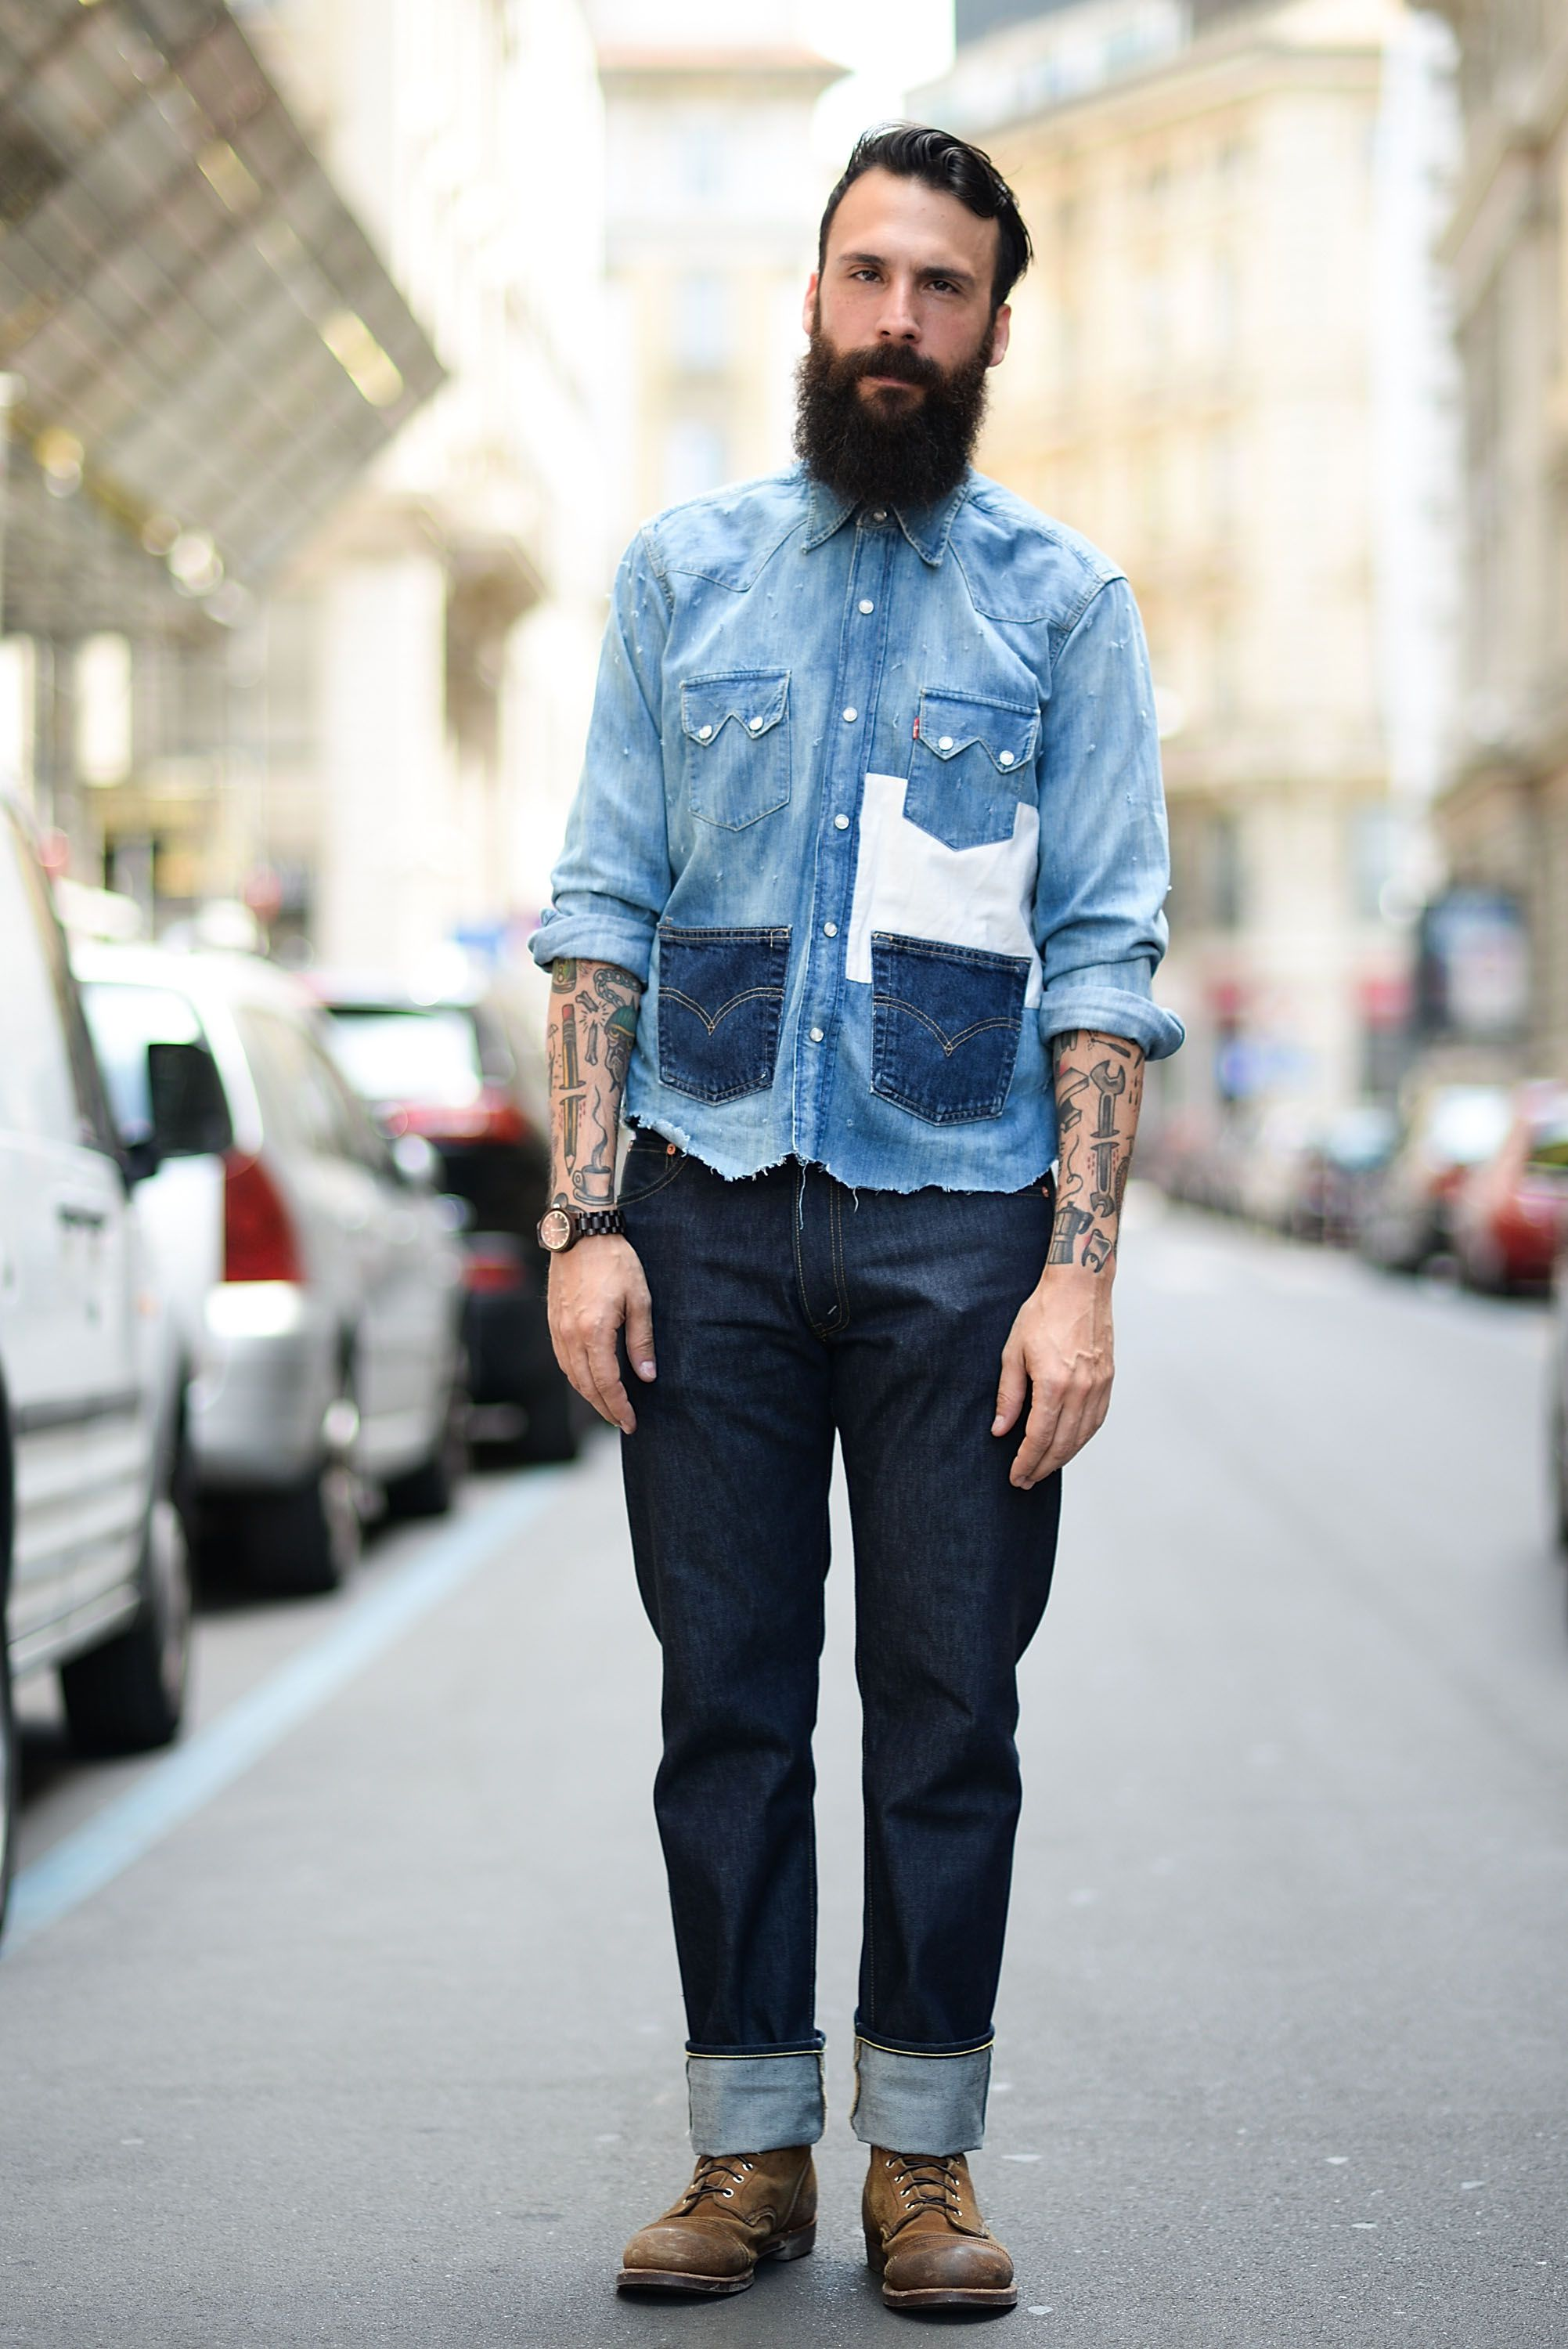 on sale 0e71b ec121 The Top Fall and Winter Trends in Men's Jeans and Denim